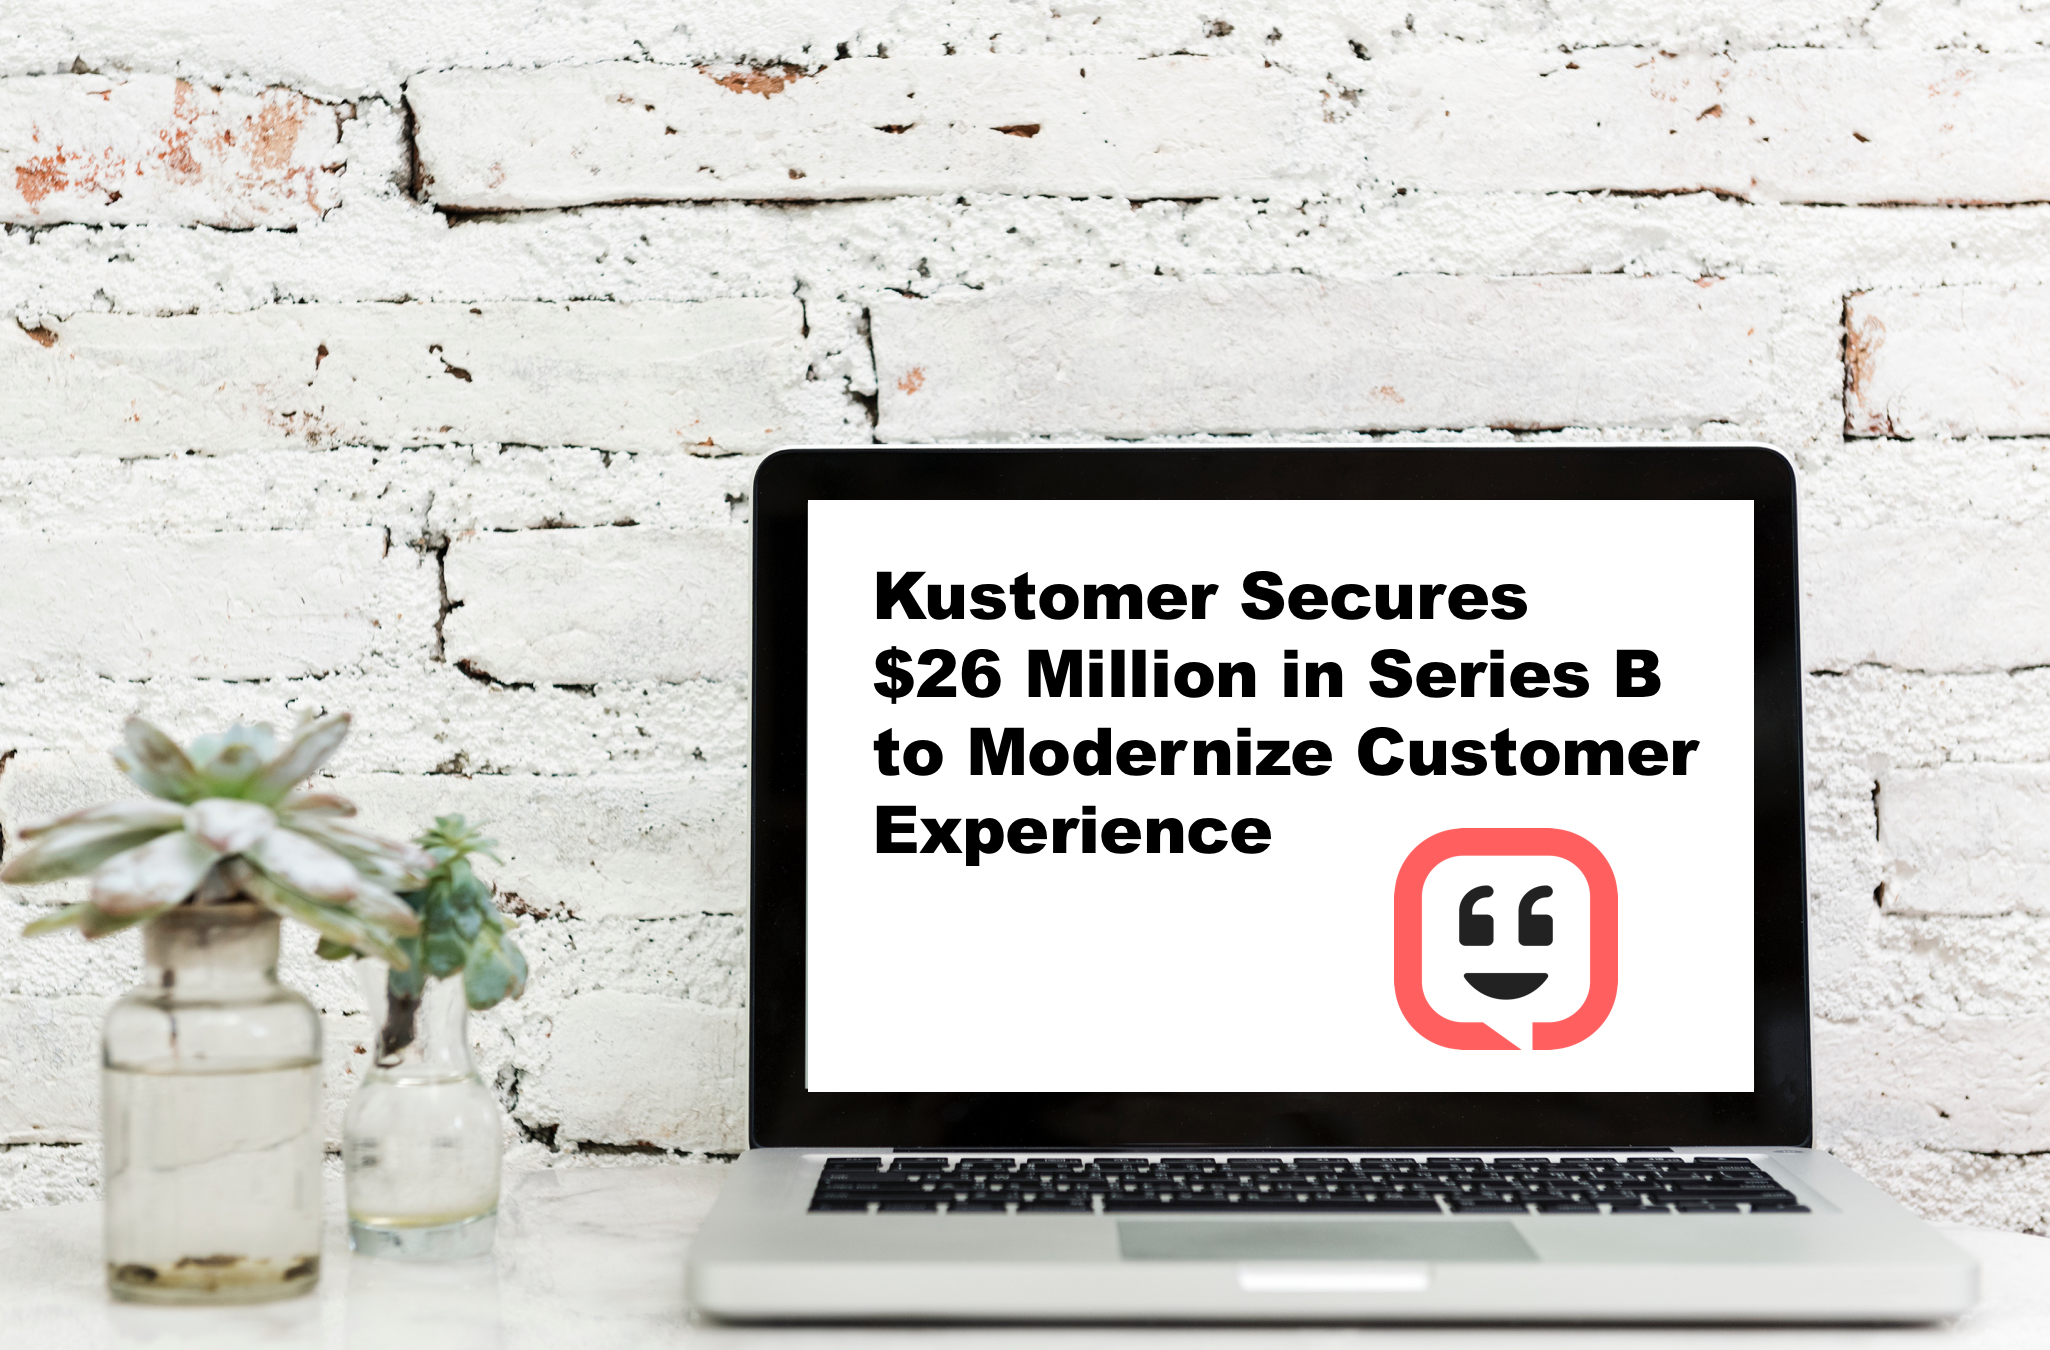 Press Release: Kustomer Secures $26 Million in Series B Funding to Modernize Customer Experience